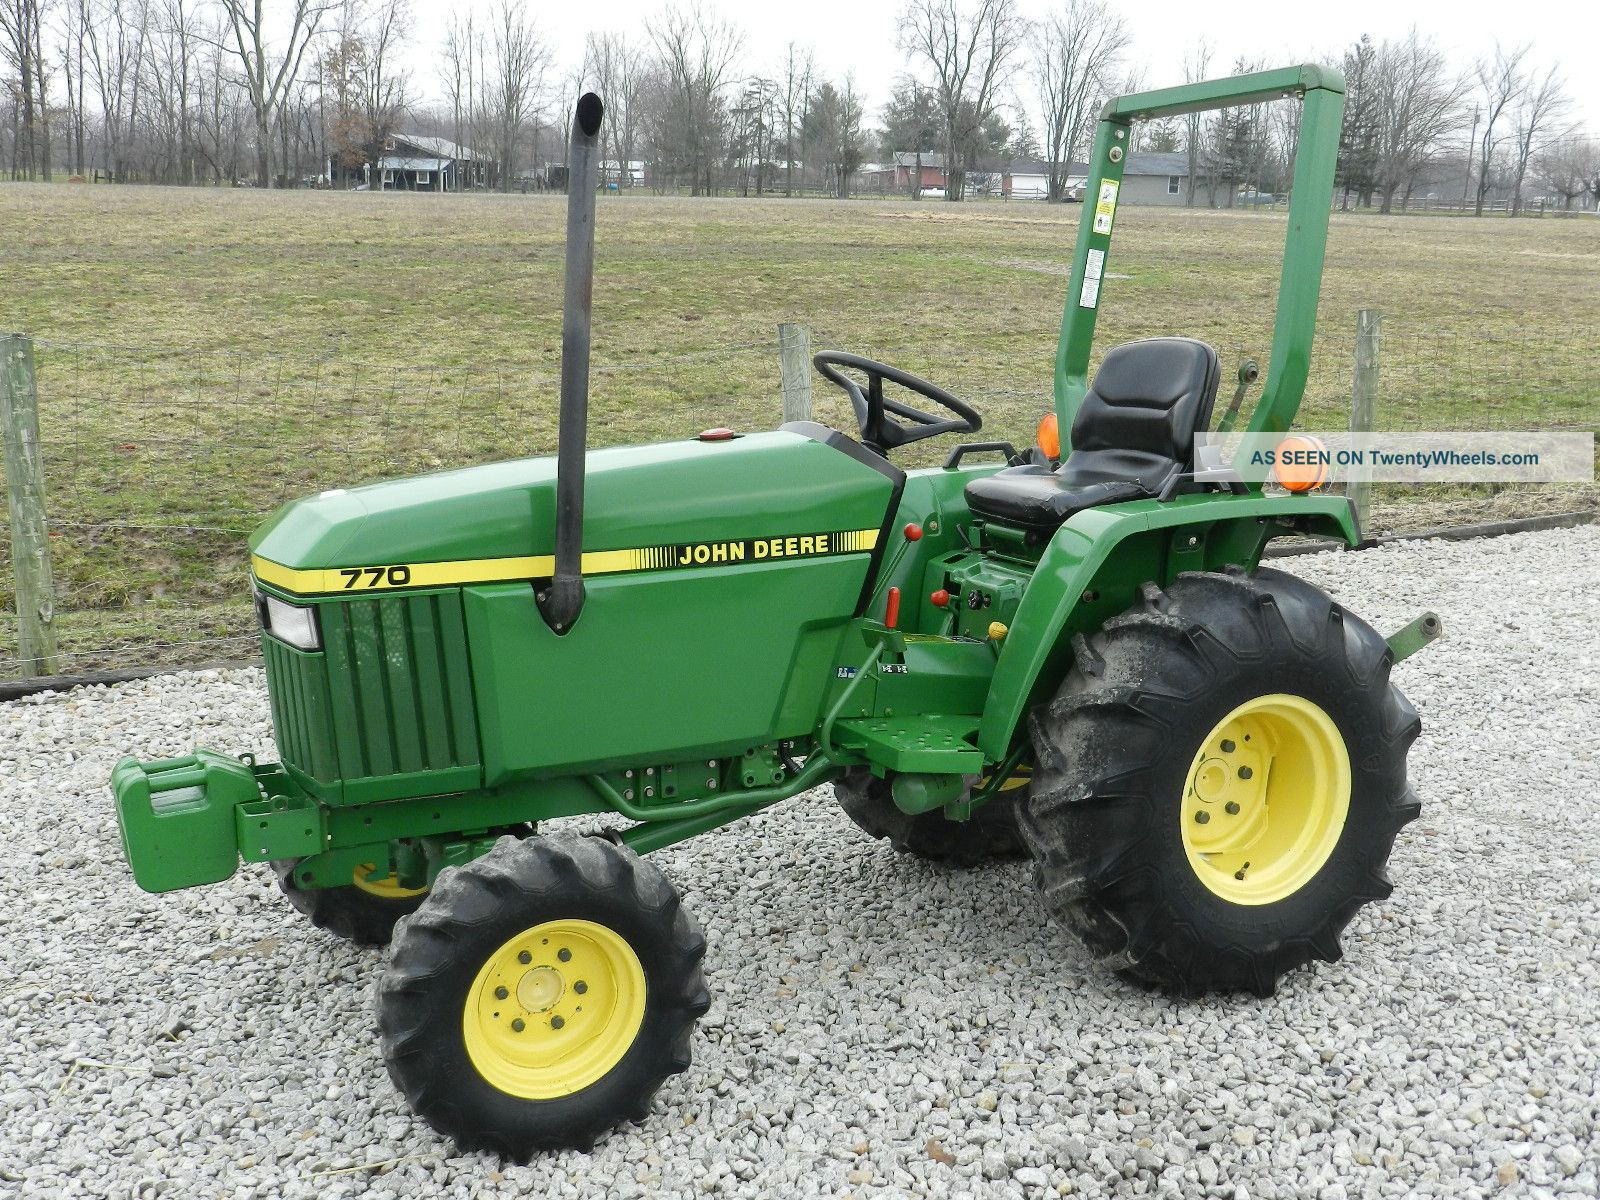 2003 John Deere 8320t Tractor 1927268 together with John Deere X595 Wiring Diagram also Lawn Mower Parts Lawn Tractor Parts John Deere Us moreover Looking For Good Used Wiring Harness For 4010 Jd Tractor furthermore S895180. on jd 2210 wiring diagram